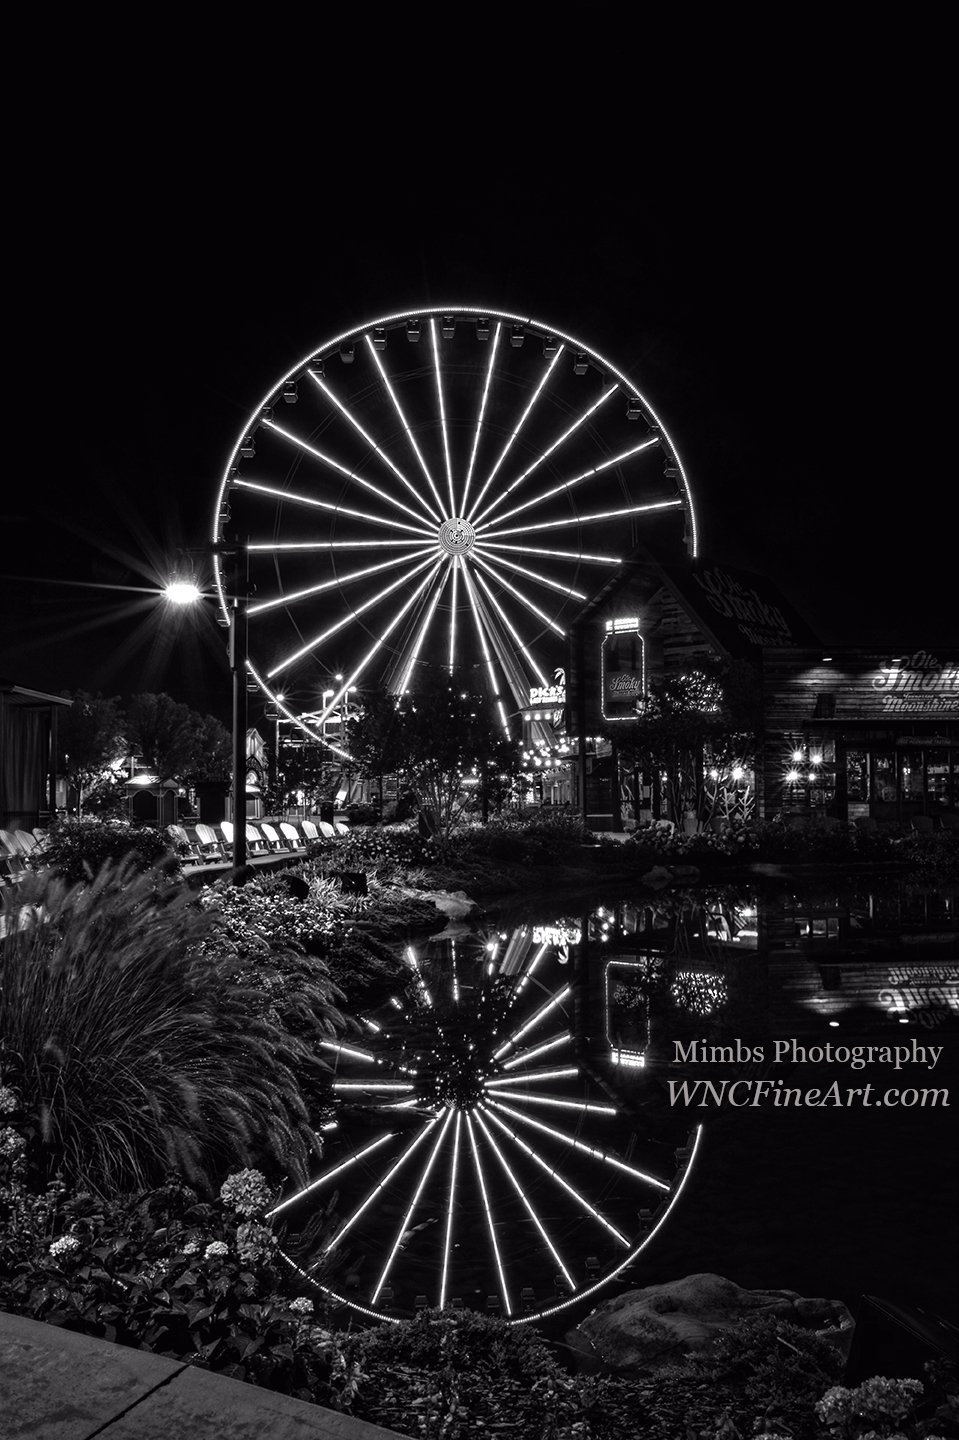 Water Moonshine and a Big Wheel in Black and White The Island at Pigeon Forge, Tennessee #blackandwhitephotography https://t.co/lMAcVxuJhE